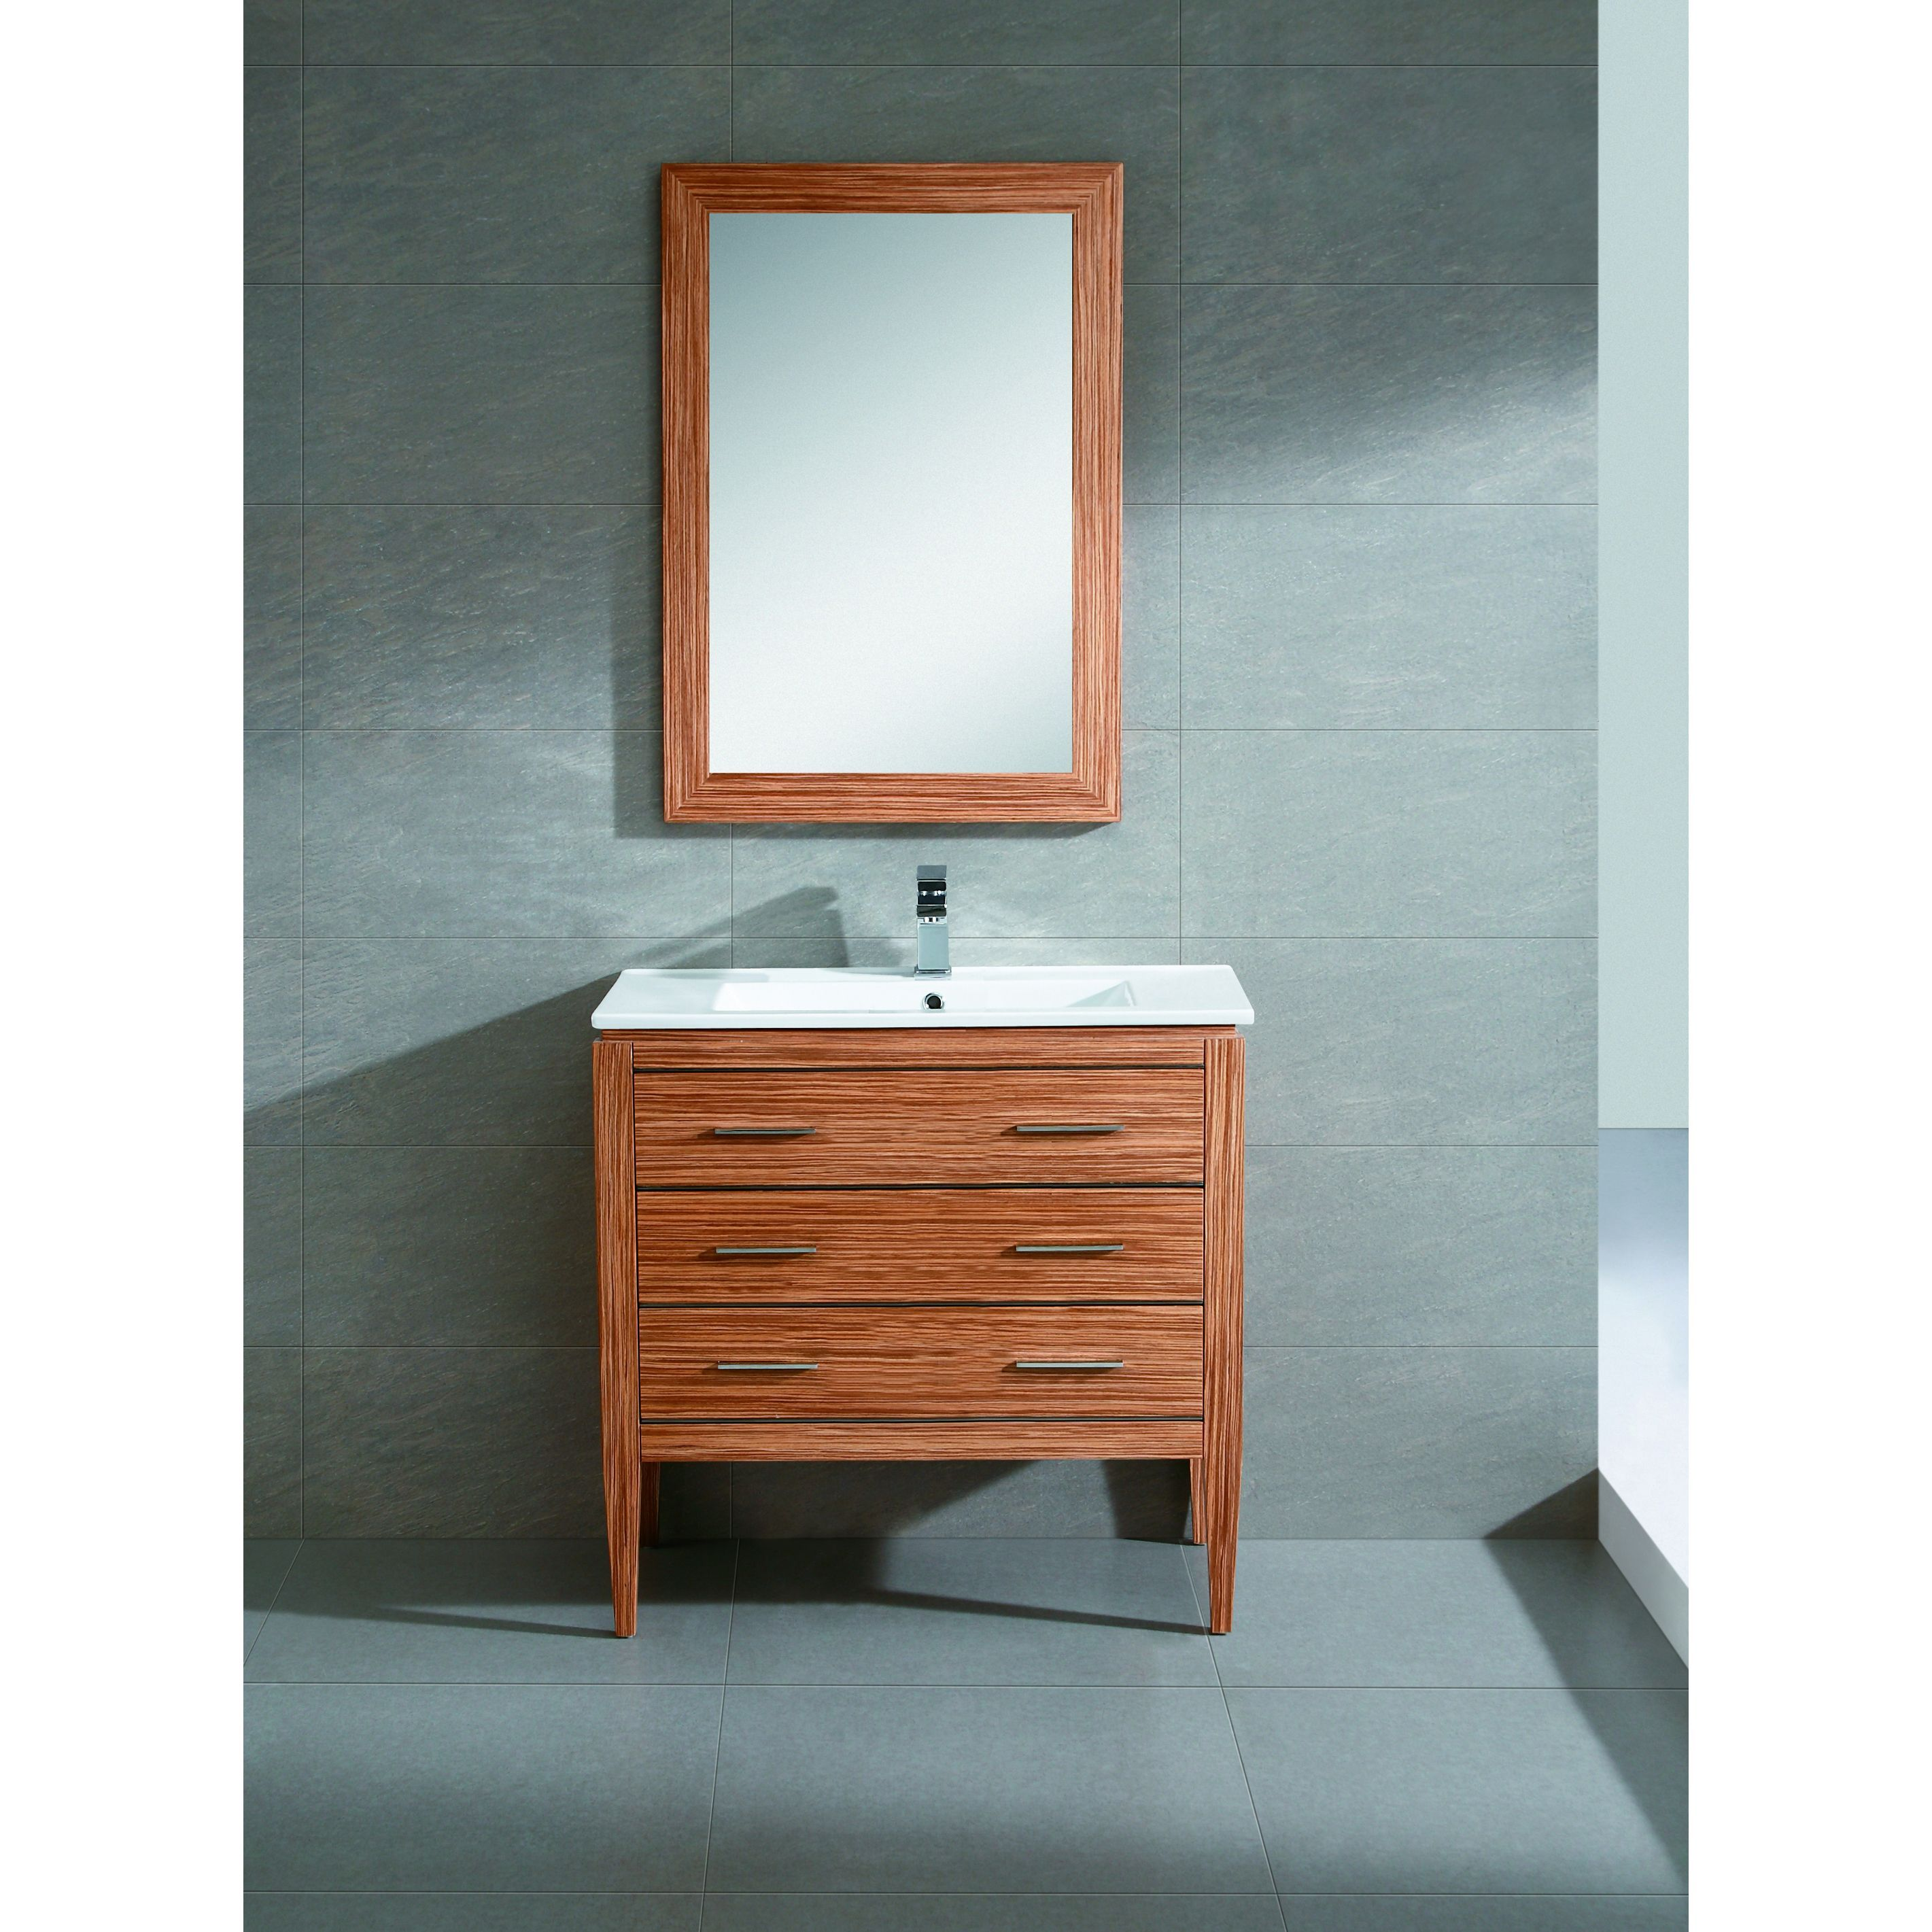 This set features a matching mirror, beautiful white vitreous China ...